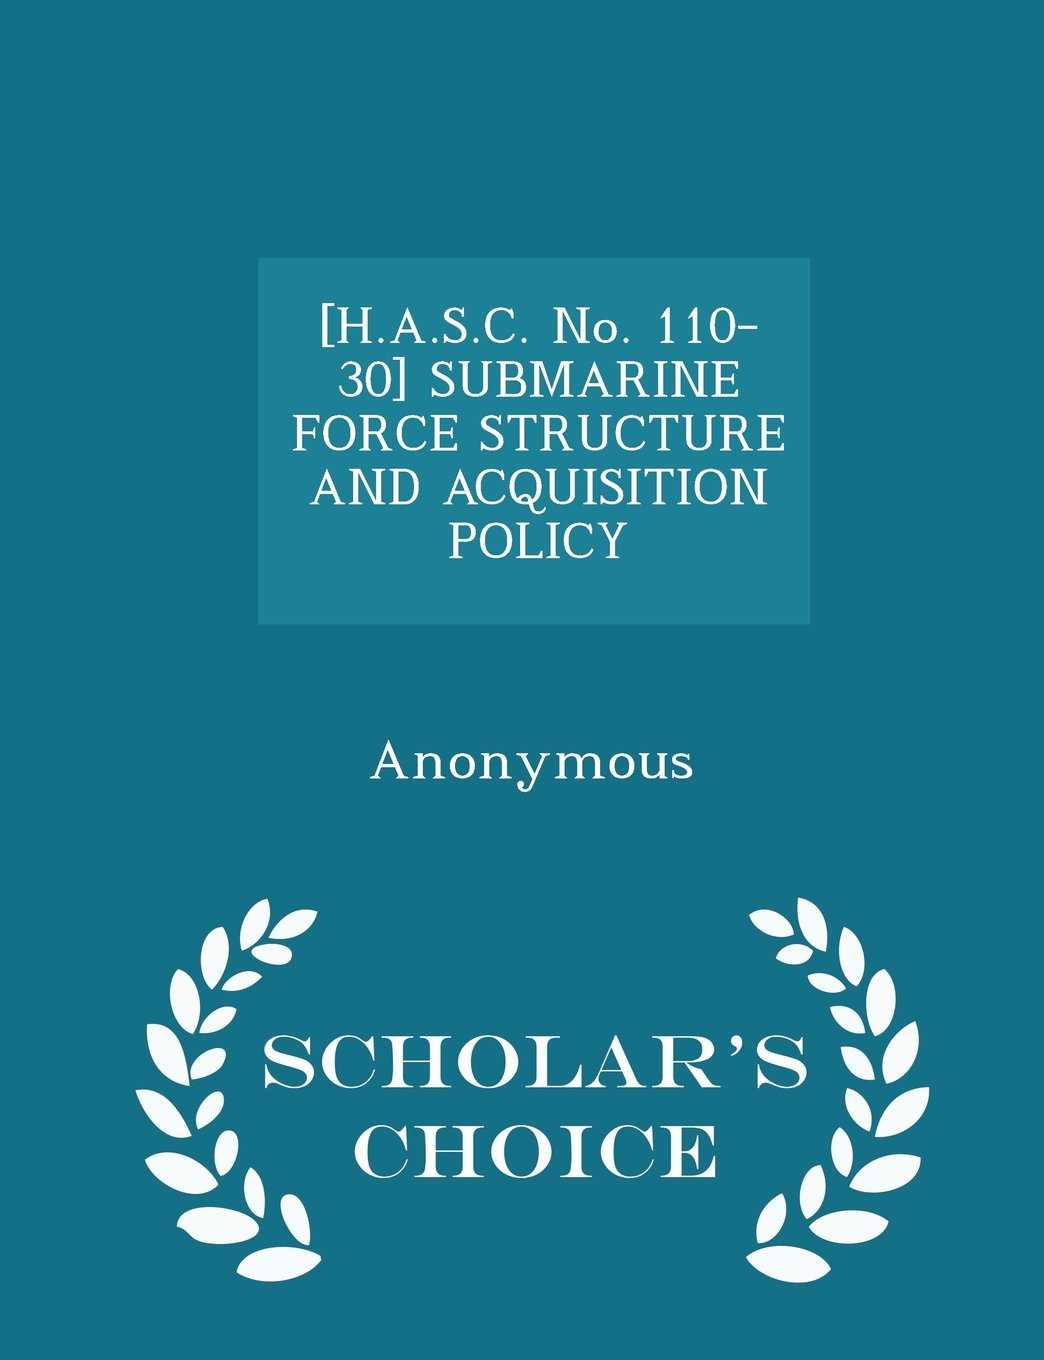 Download [H.A.S.C. No. 110-30] SUBMARINE FORCE STRUCTURE AND ACQUISITION POLICY - Scholar's Choice Edition ebook